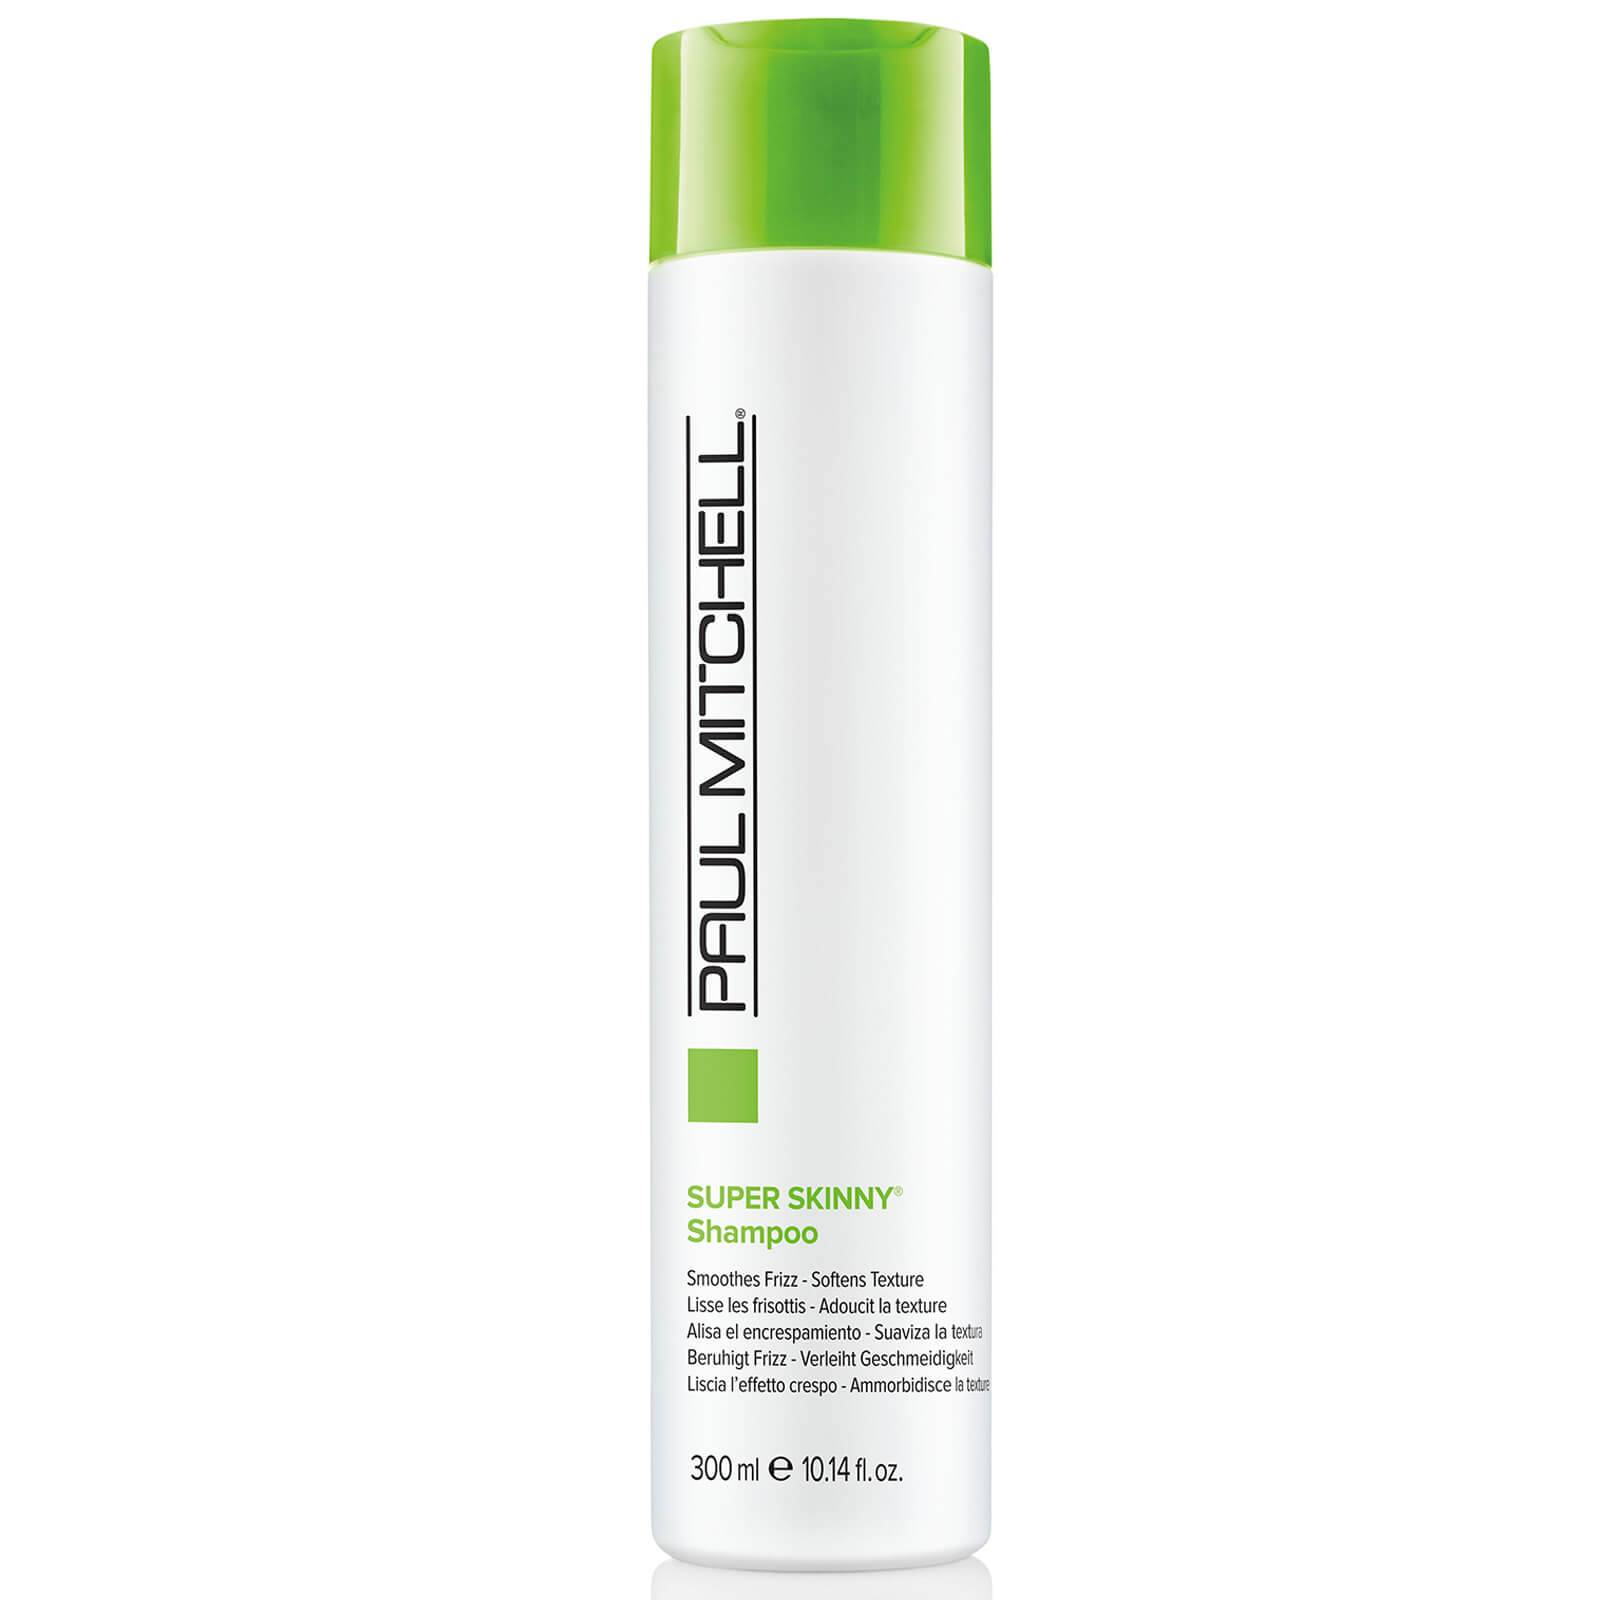 Paul Mitchell Shampoing lissant et adoucissant Paul Mitchell Super Skinny 300ml